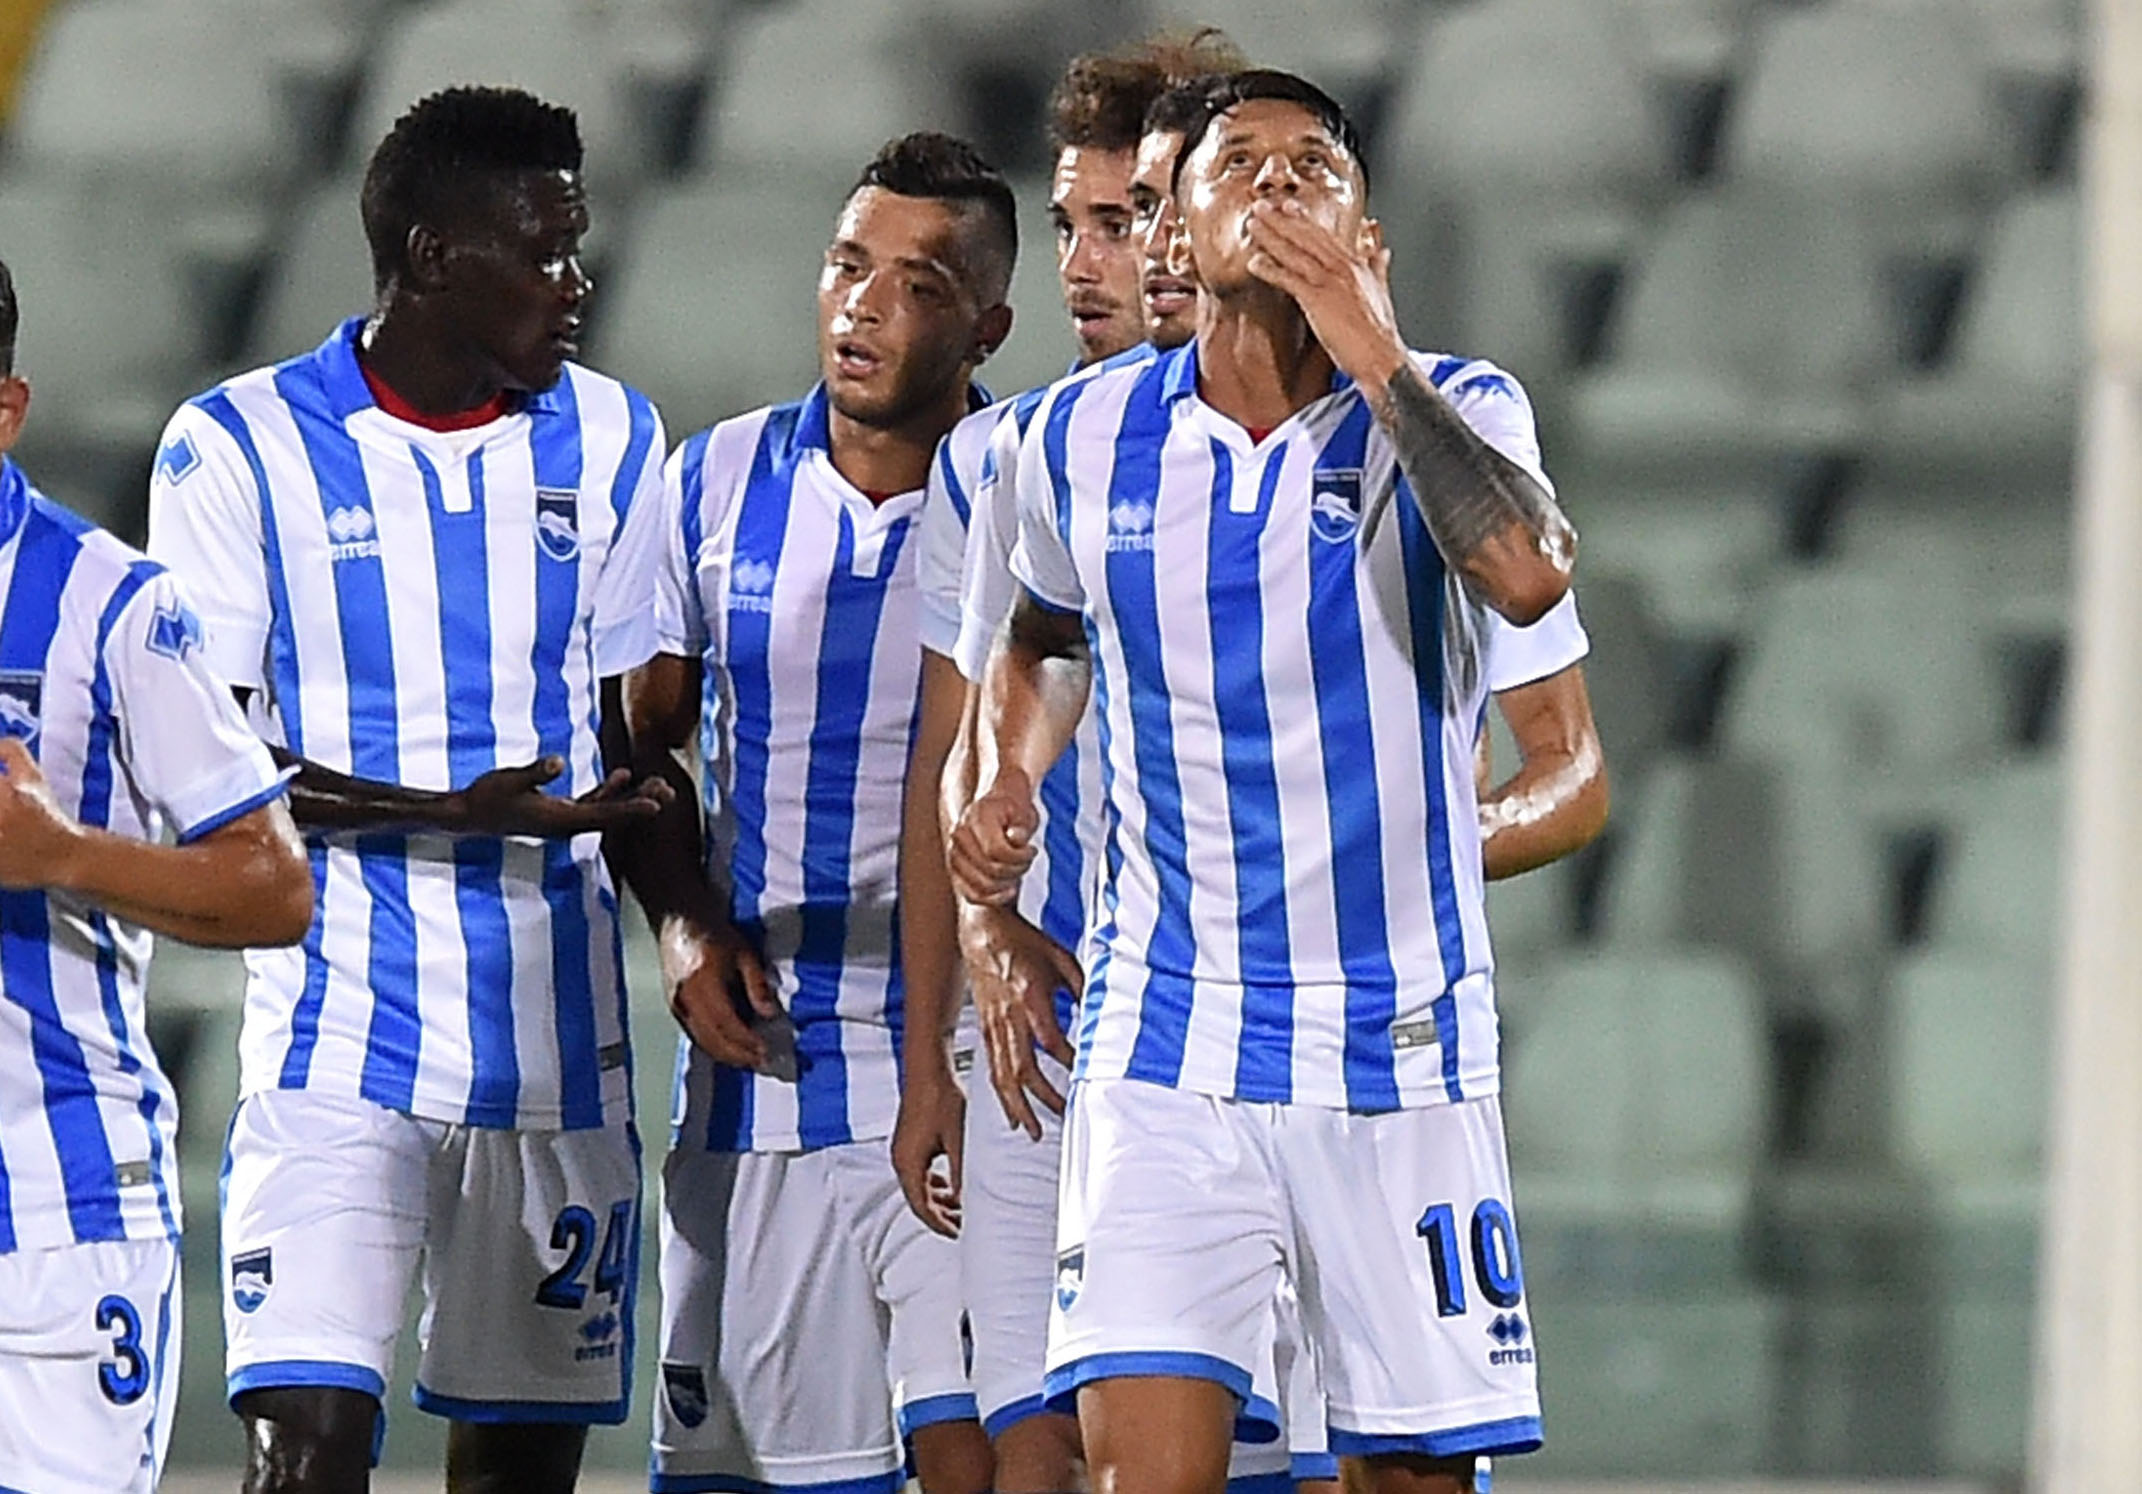 Pescara Football Team